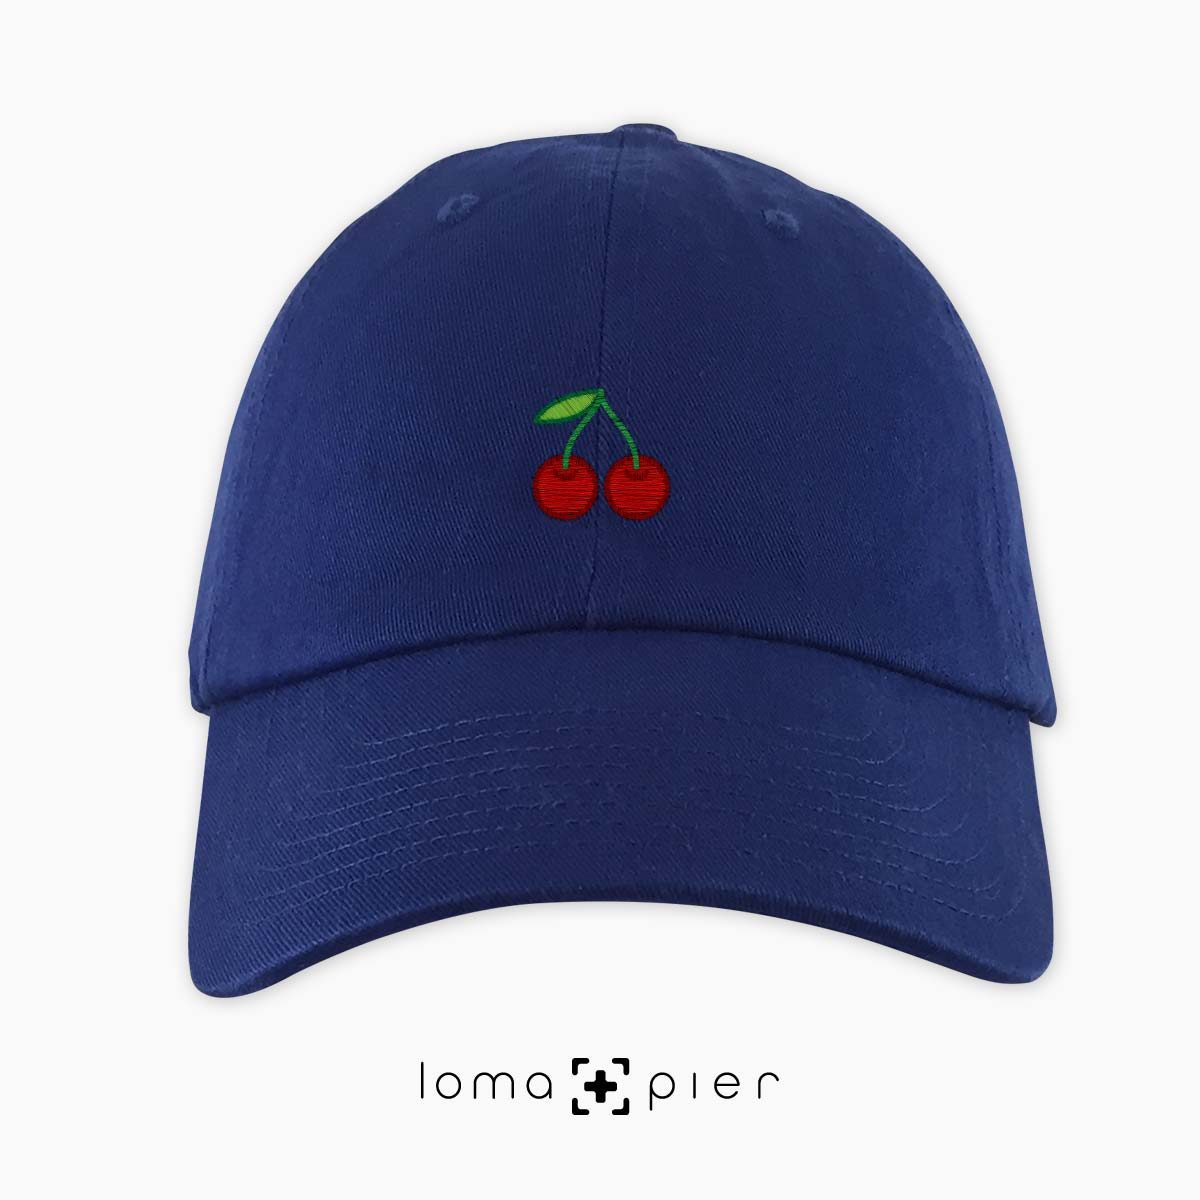 CHERRIES icon embroidered on a royal blue dad hat by loma+pier hat store made in the USA